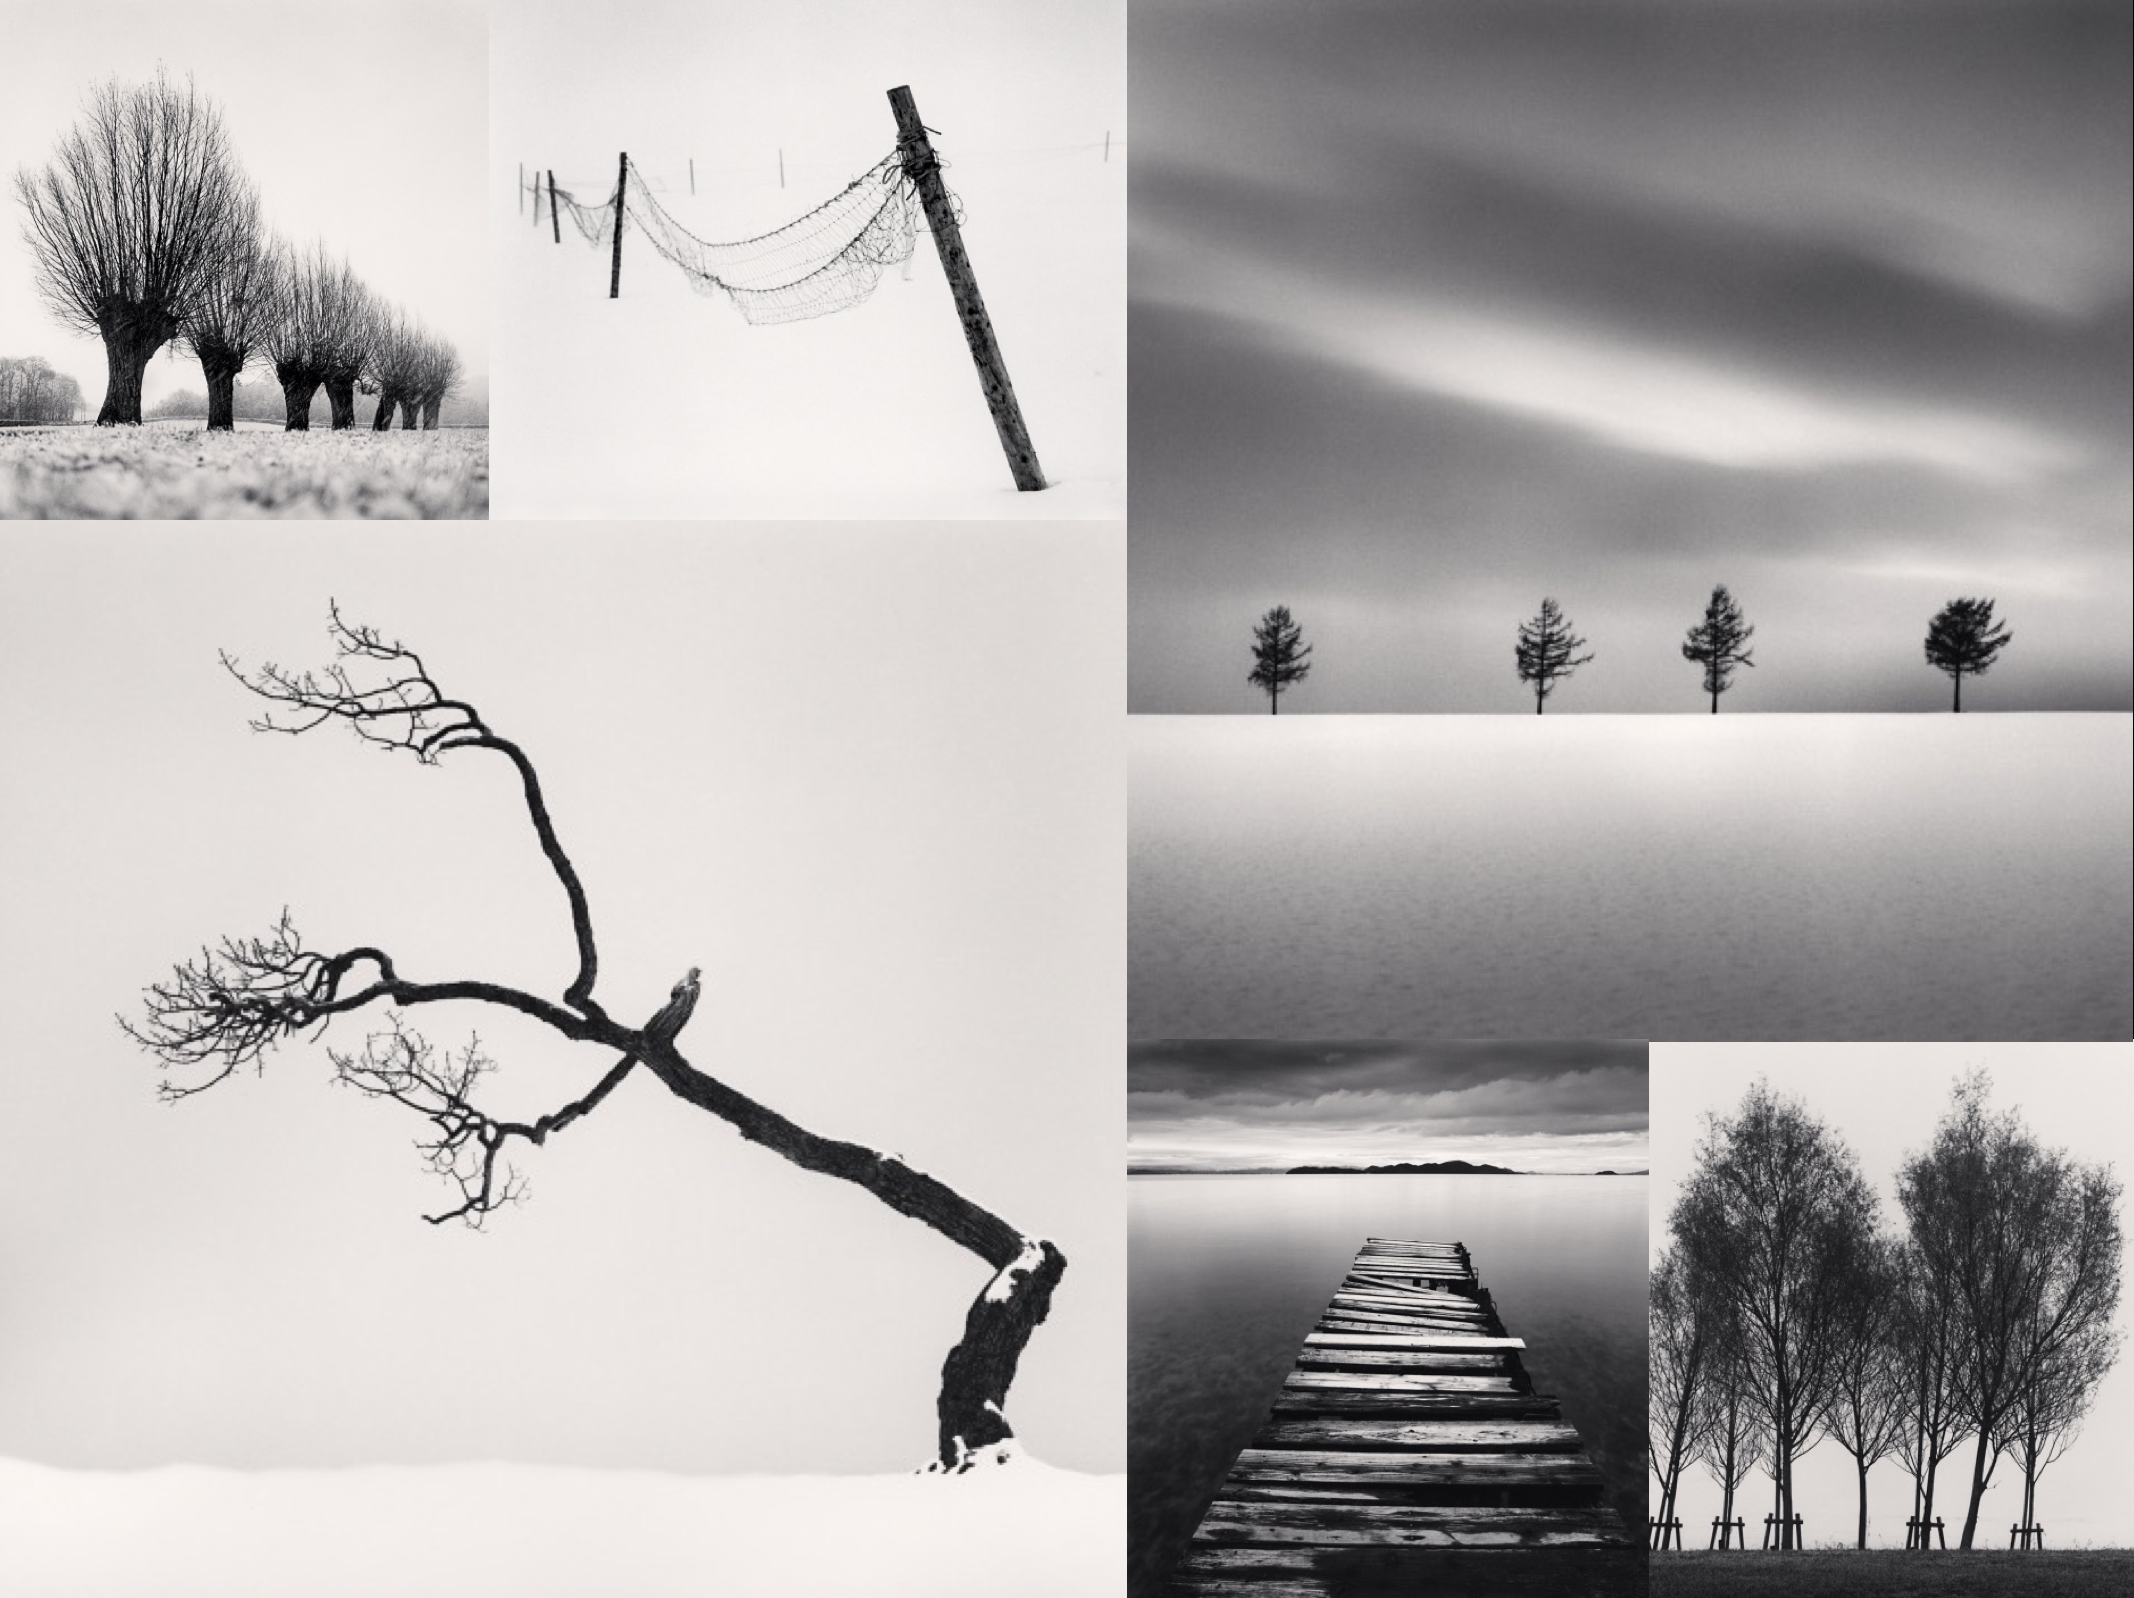 Some of Michael Kenna's famous images...